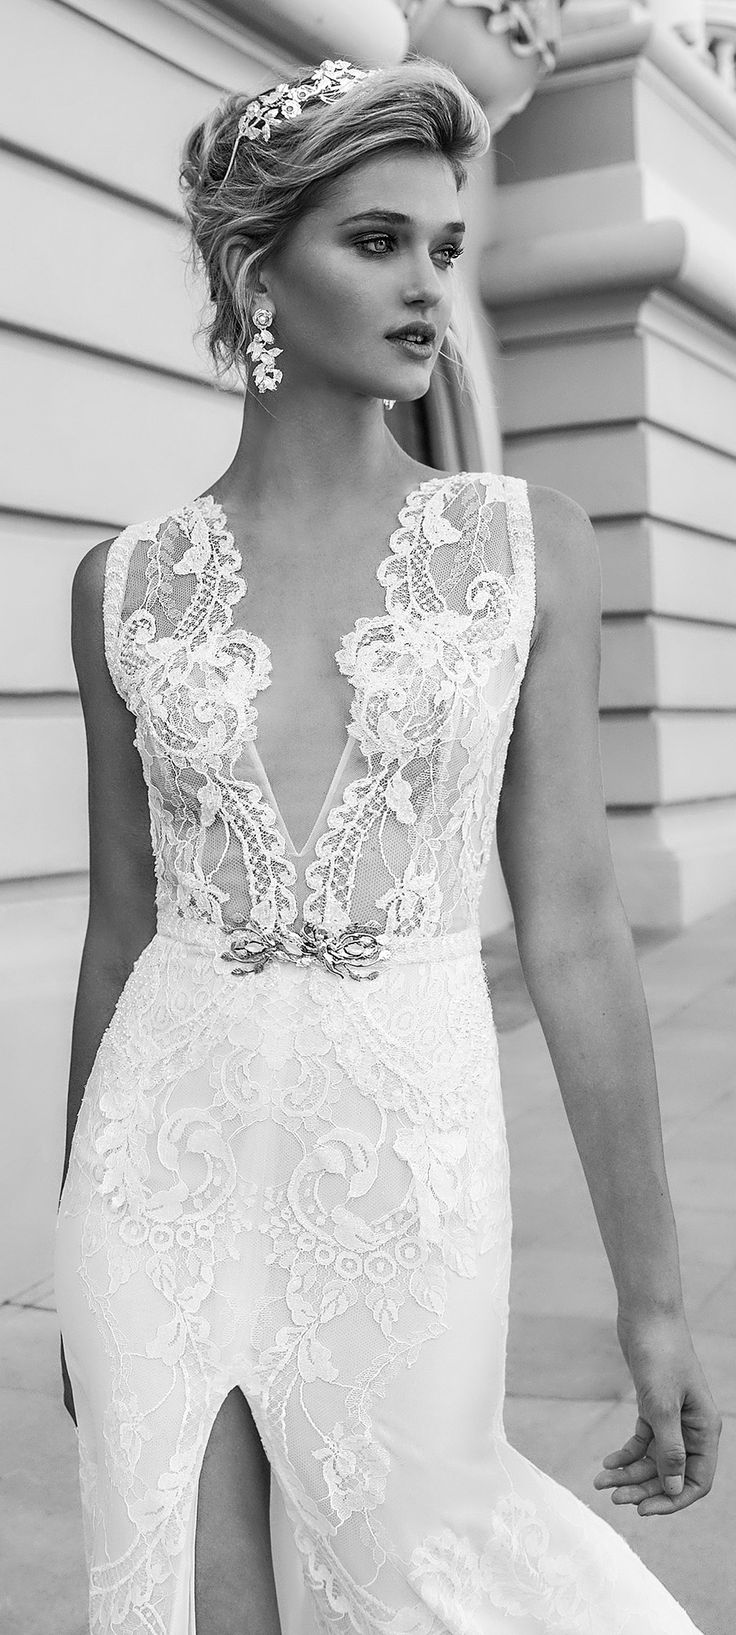 Stunning! BRIANNA by Alessandra Rinaudo features an eye-catching deep V-neck lace bodice. #AR_2017Collection #AlessandraRinaudo #bridal #wedding #ad #weddingdress #lace #romantic